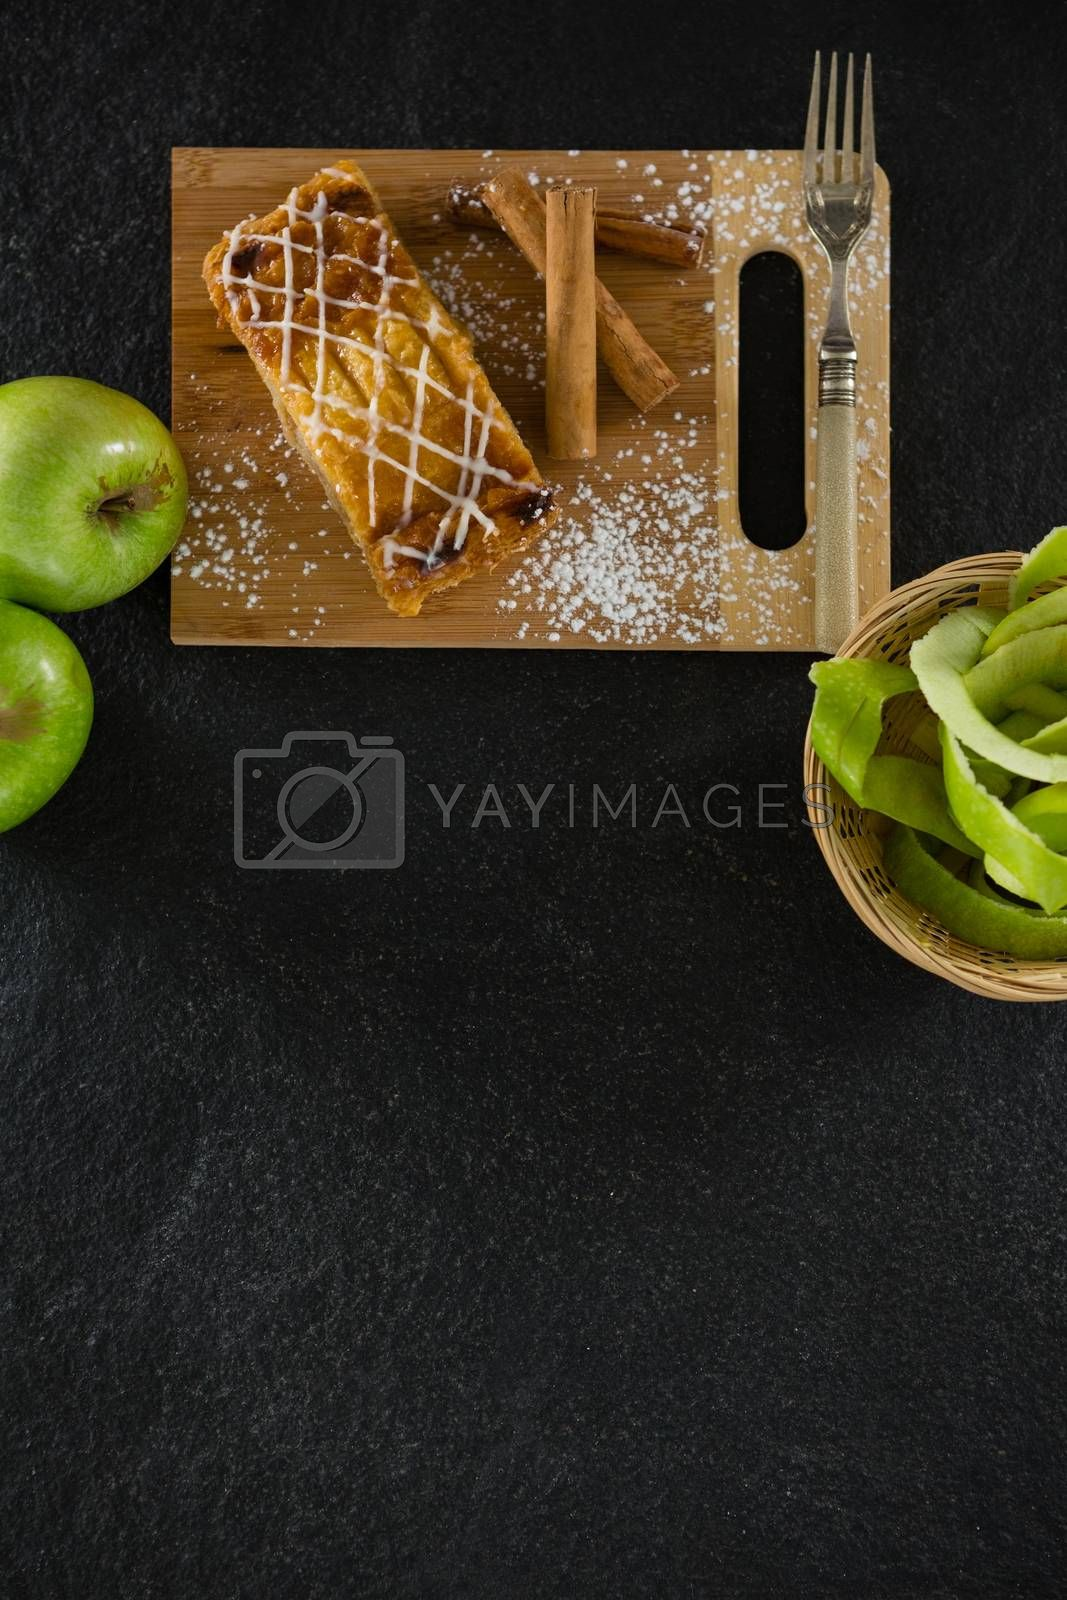 Tart and cinnamon sticks on chopping board by Wavebreakmedia